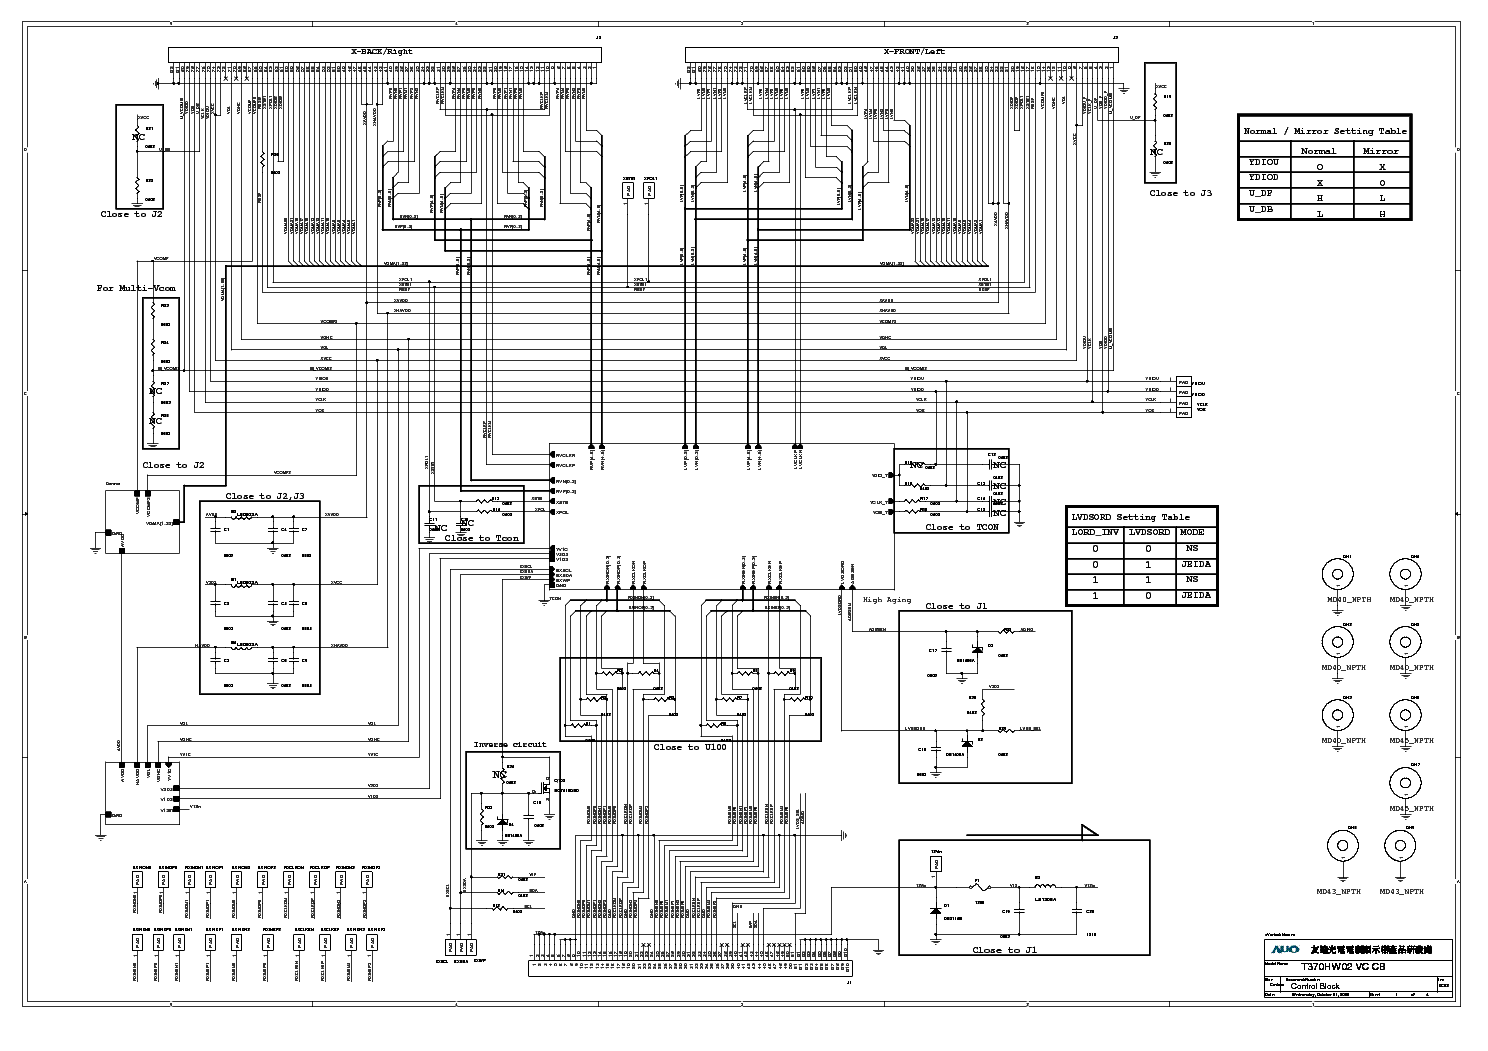 T Con Board Circuit Diagram Wiring Library Samsung T370hw02 Vc Bn07 00643a Sch Service Manual